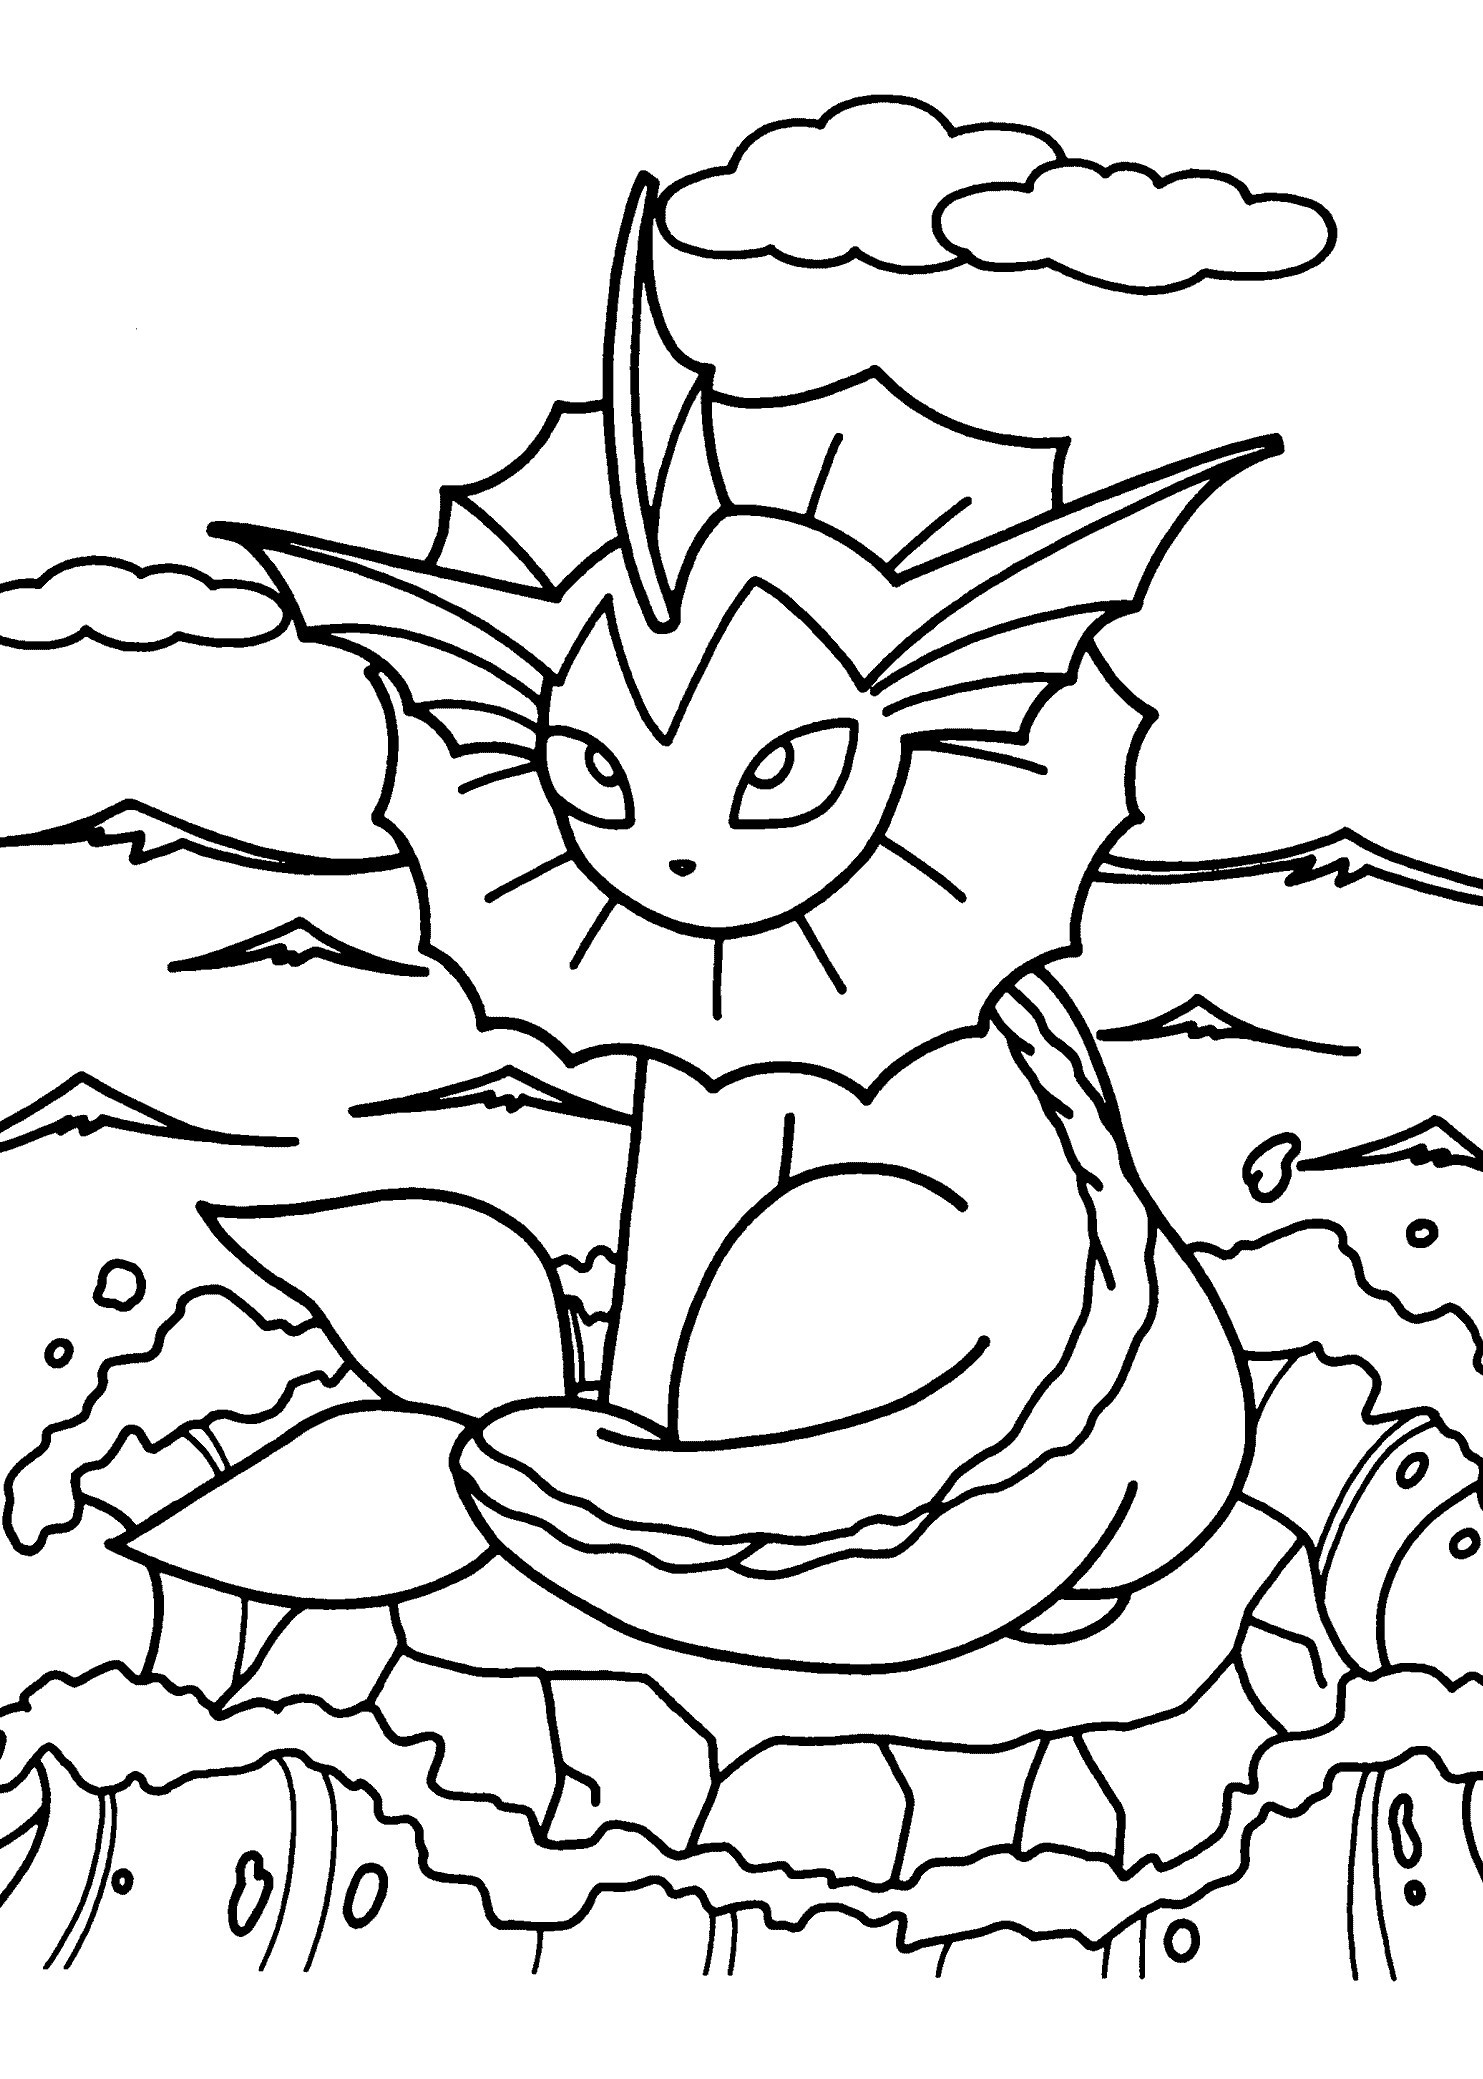 1483x2079 Yoda Coloring Pages Lovely Be Kind Coloring Page Lovely Star Wars